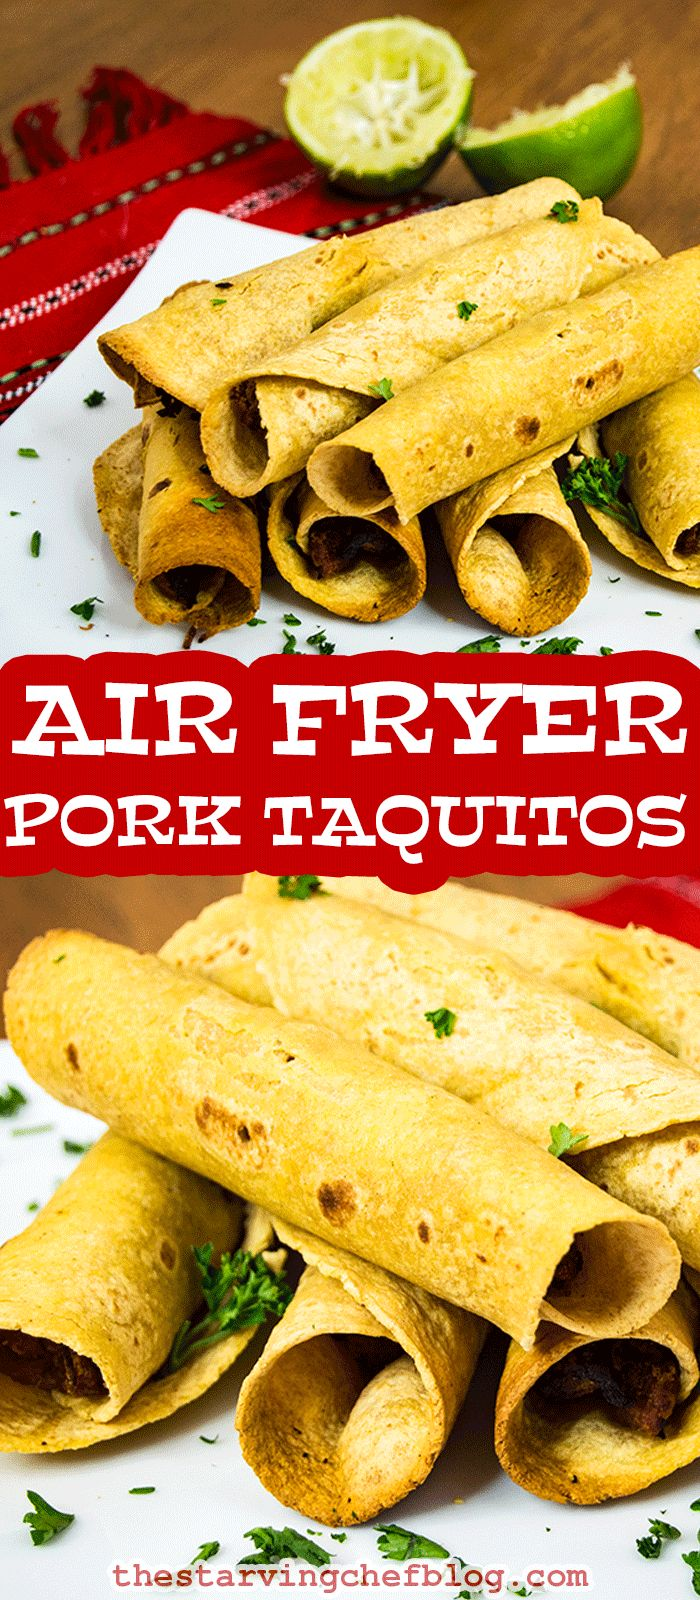 The Starving Chef | Air fryer taquitos with a deliciously crunchy shell!